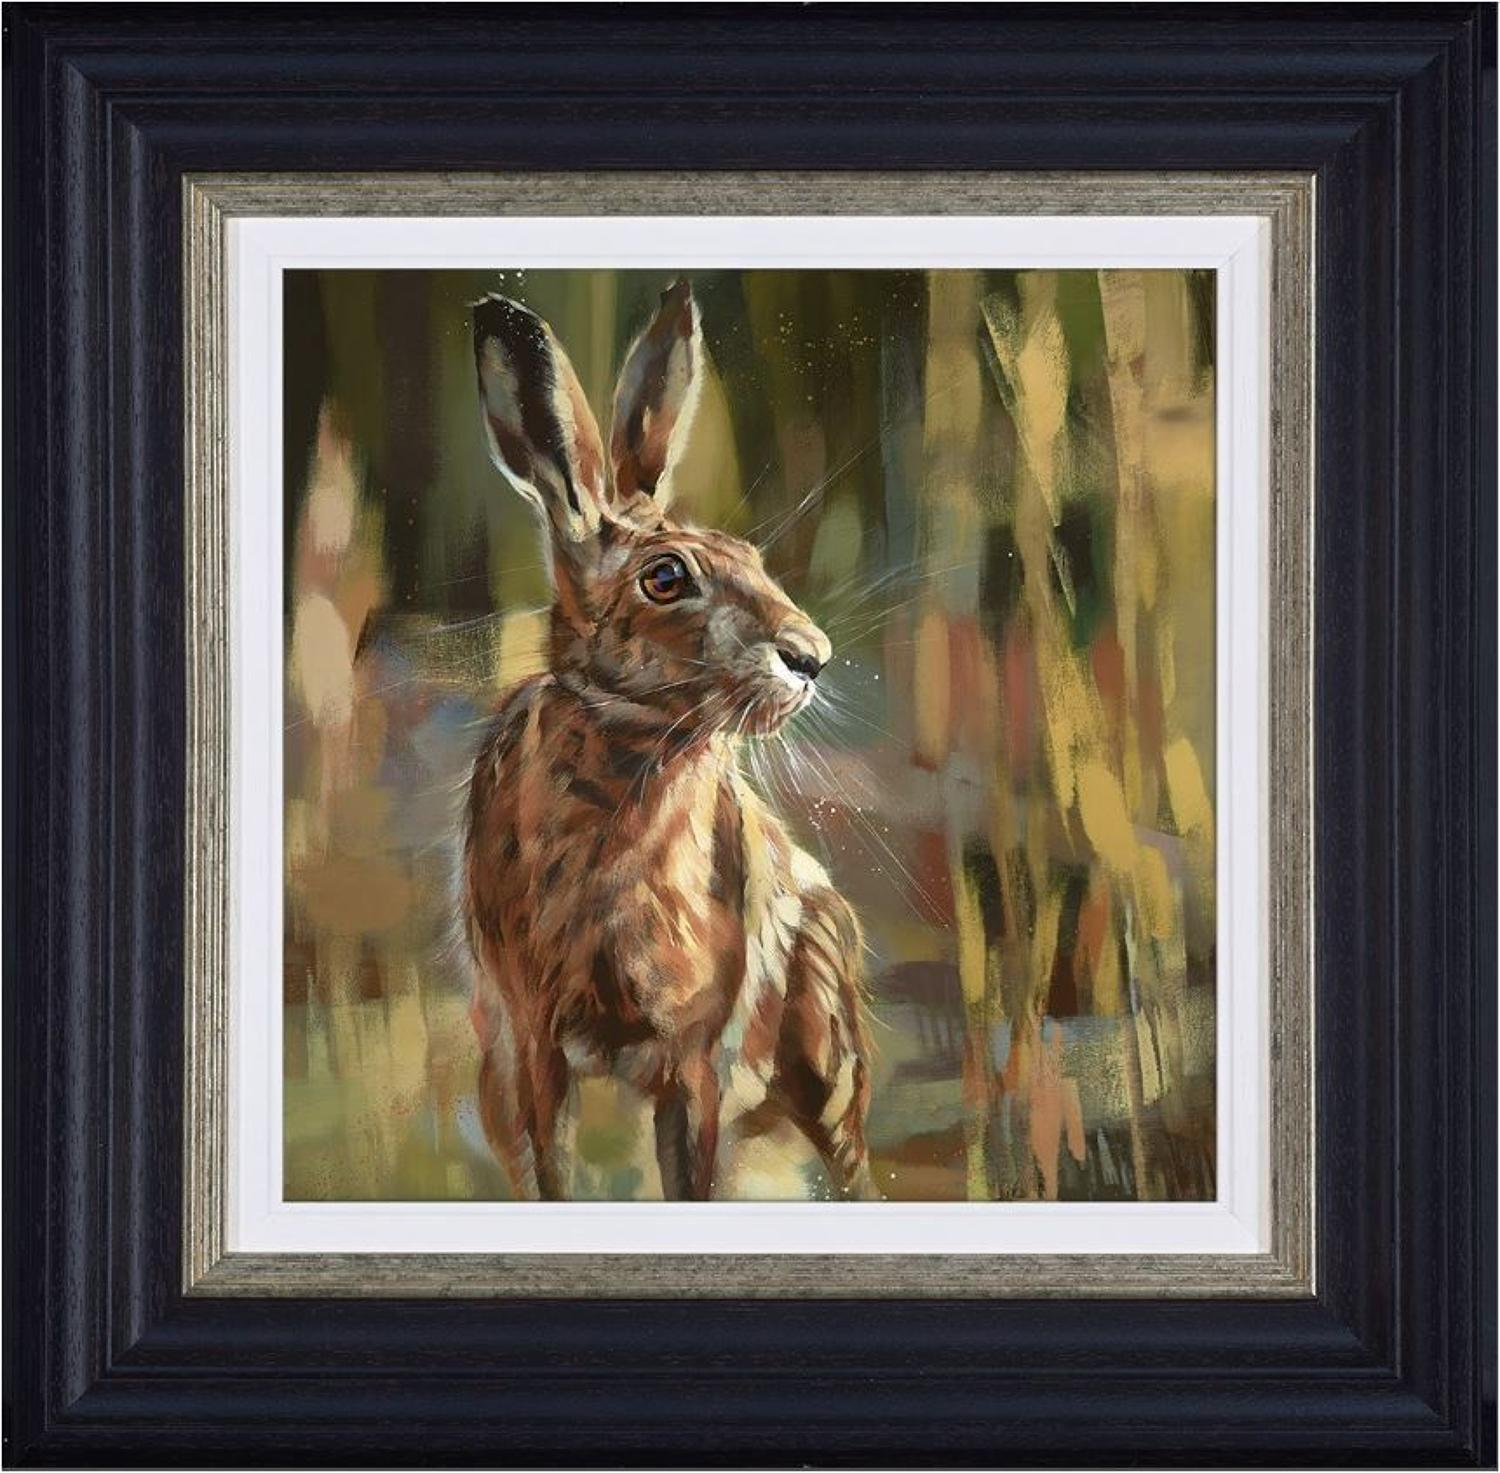 Poised for Action Framed Canvas Art Print by Debbie Boon